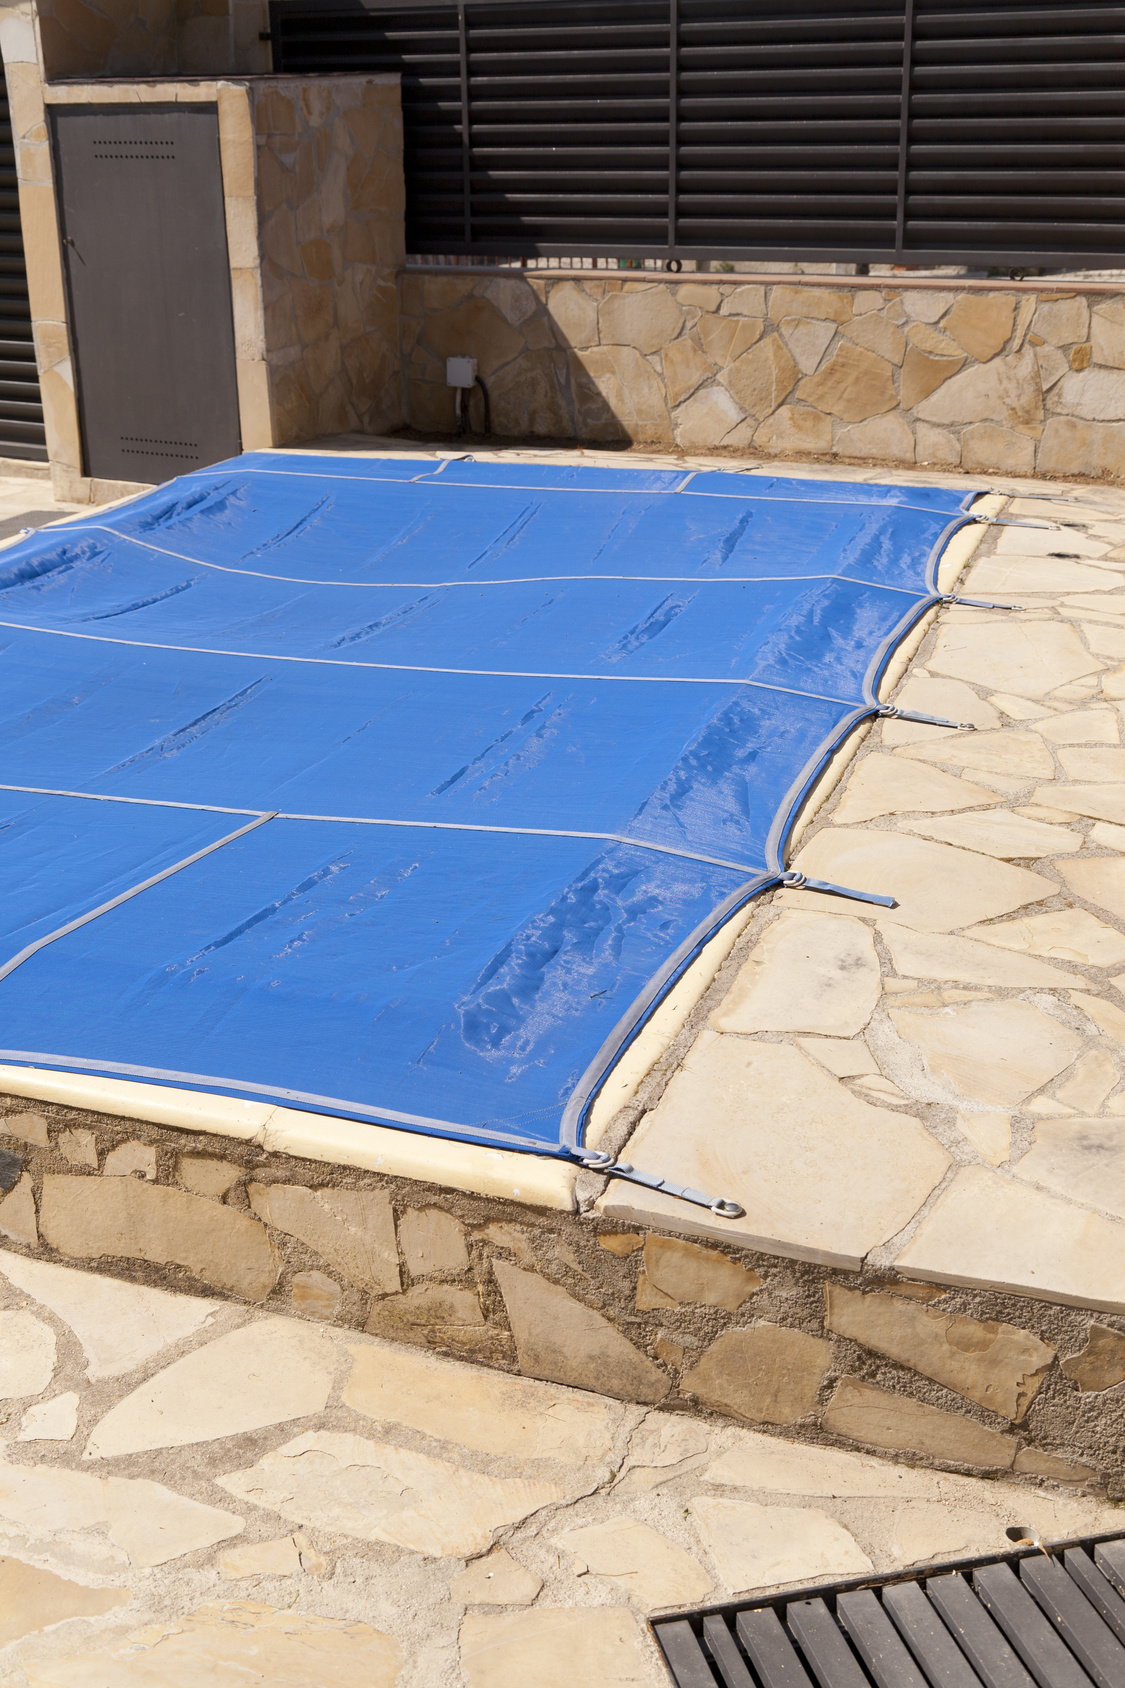 Common Pool Cover Problems